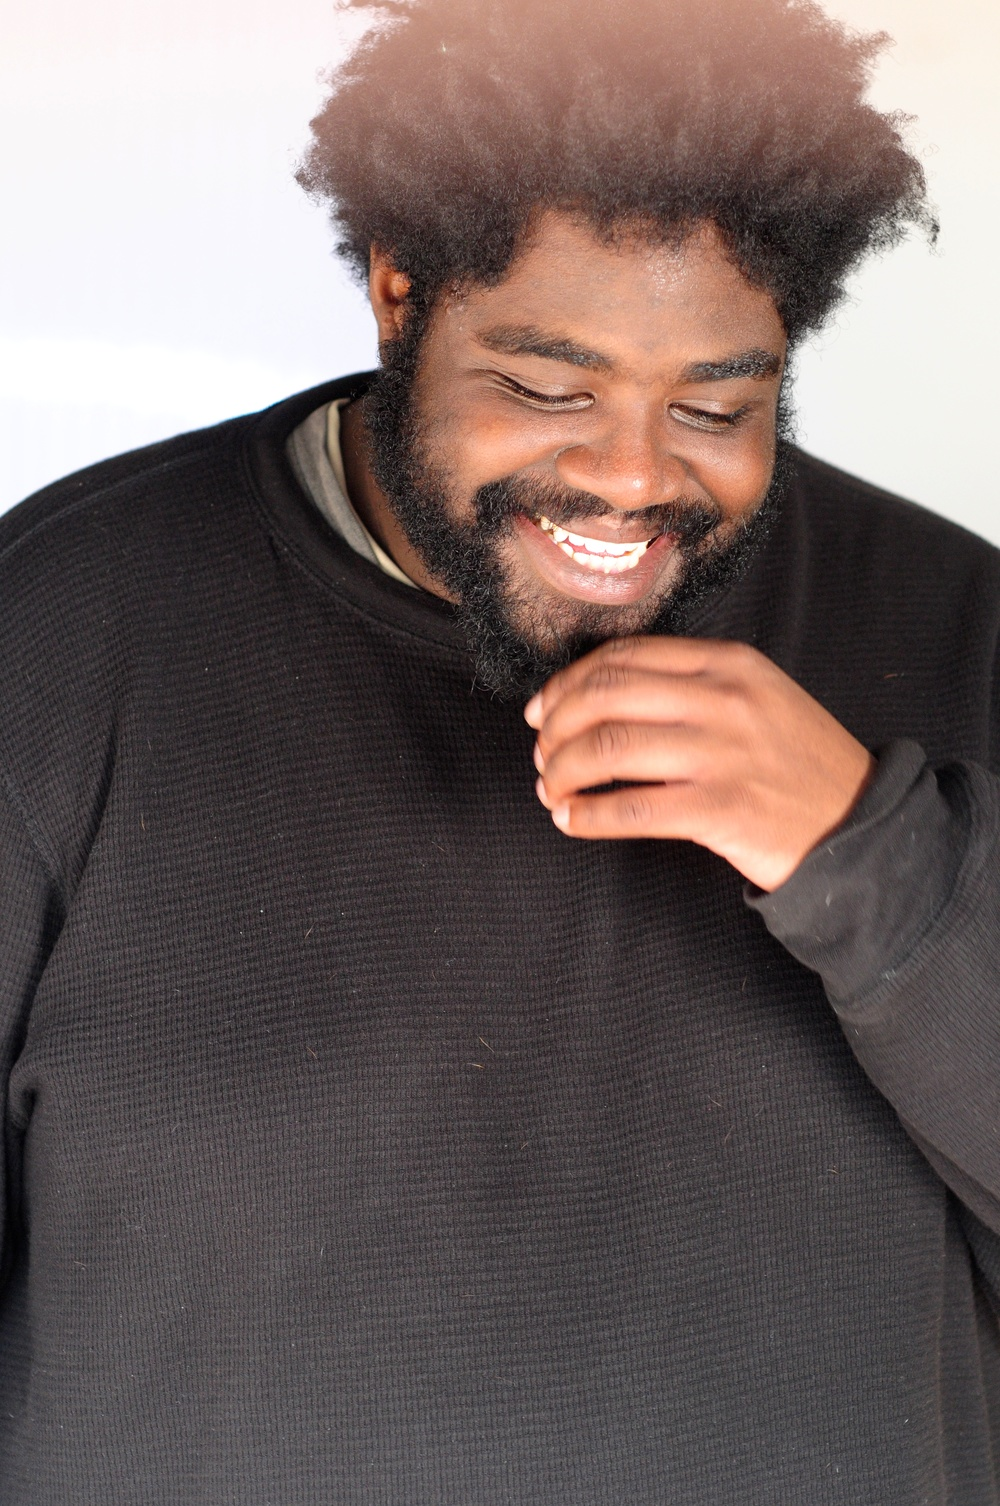 ron-funches-headshot_1.jpg